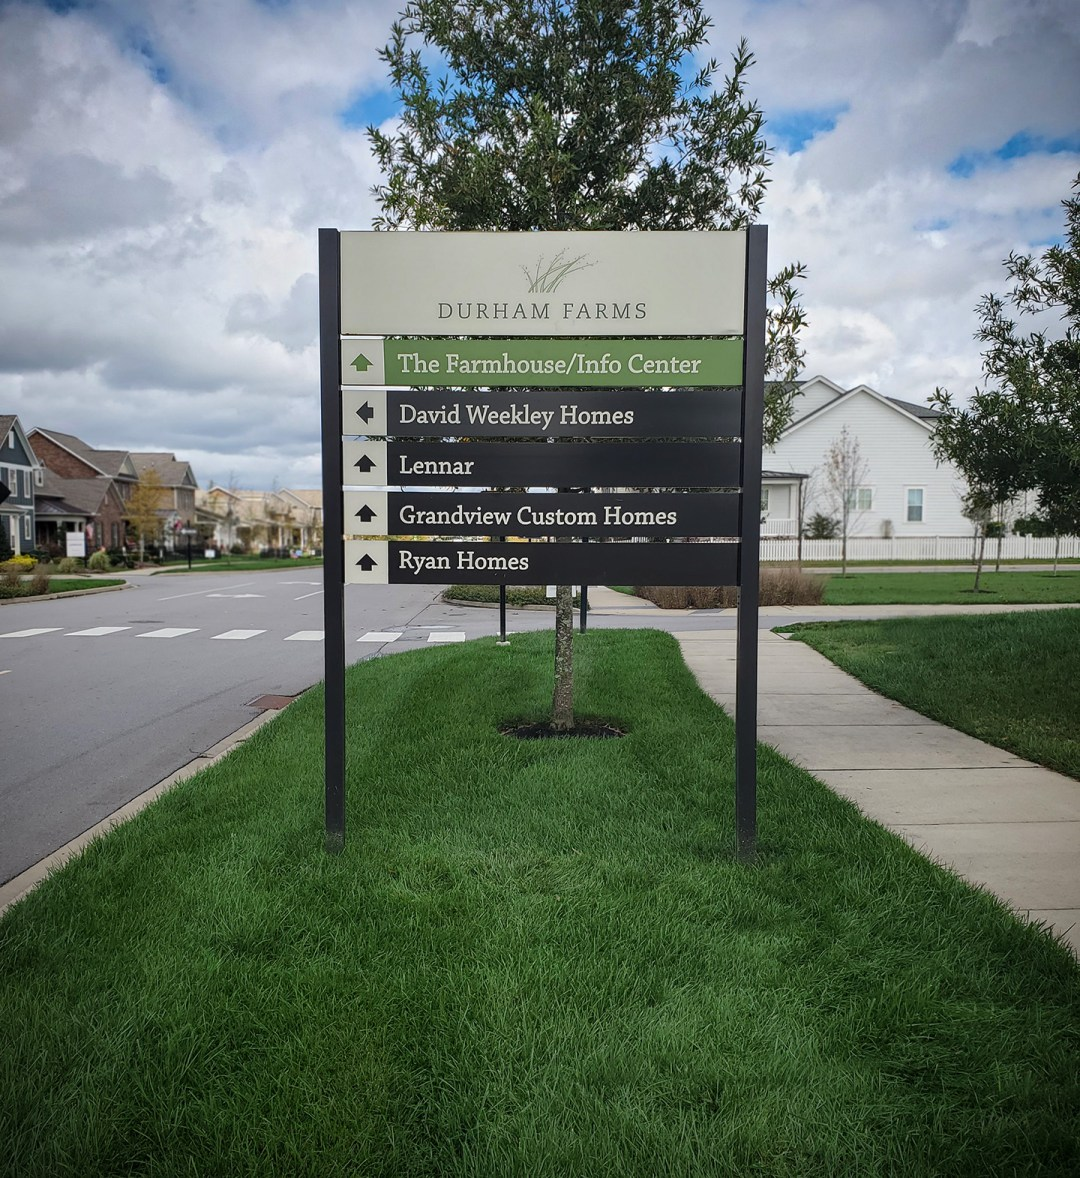 Durham Farms_Wayfinding